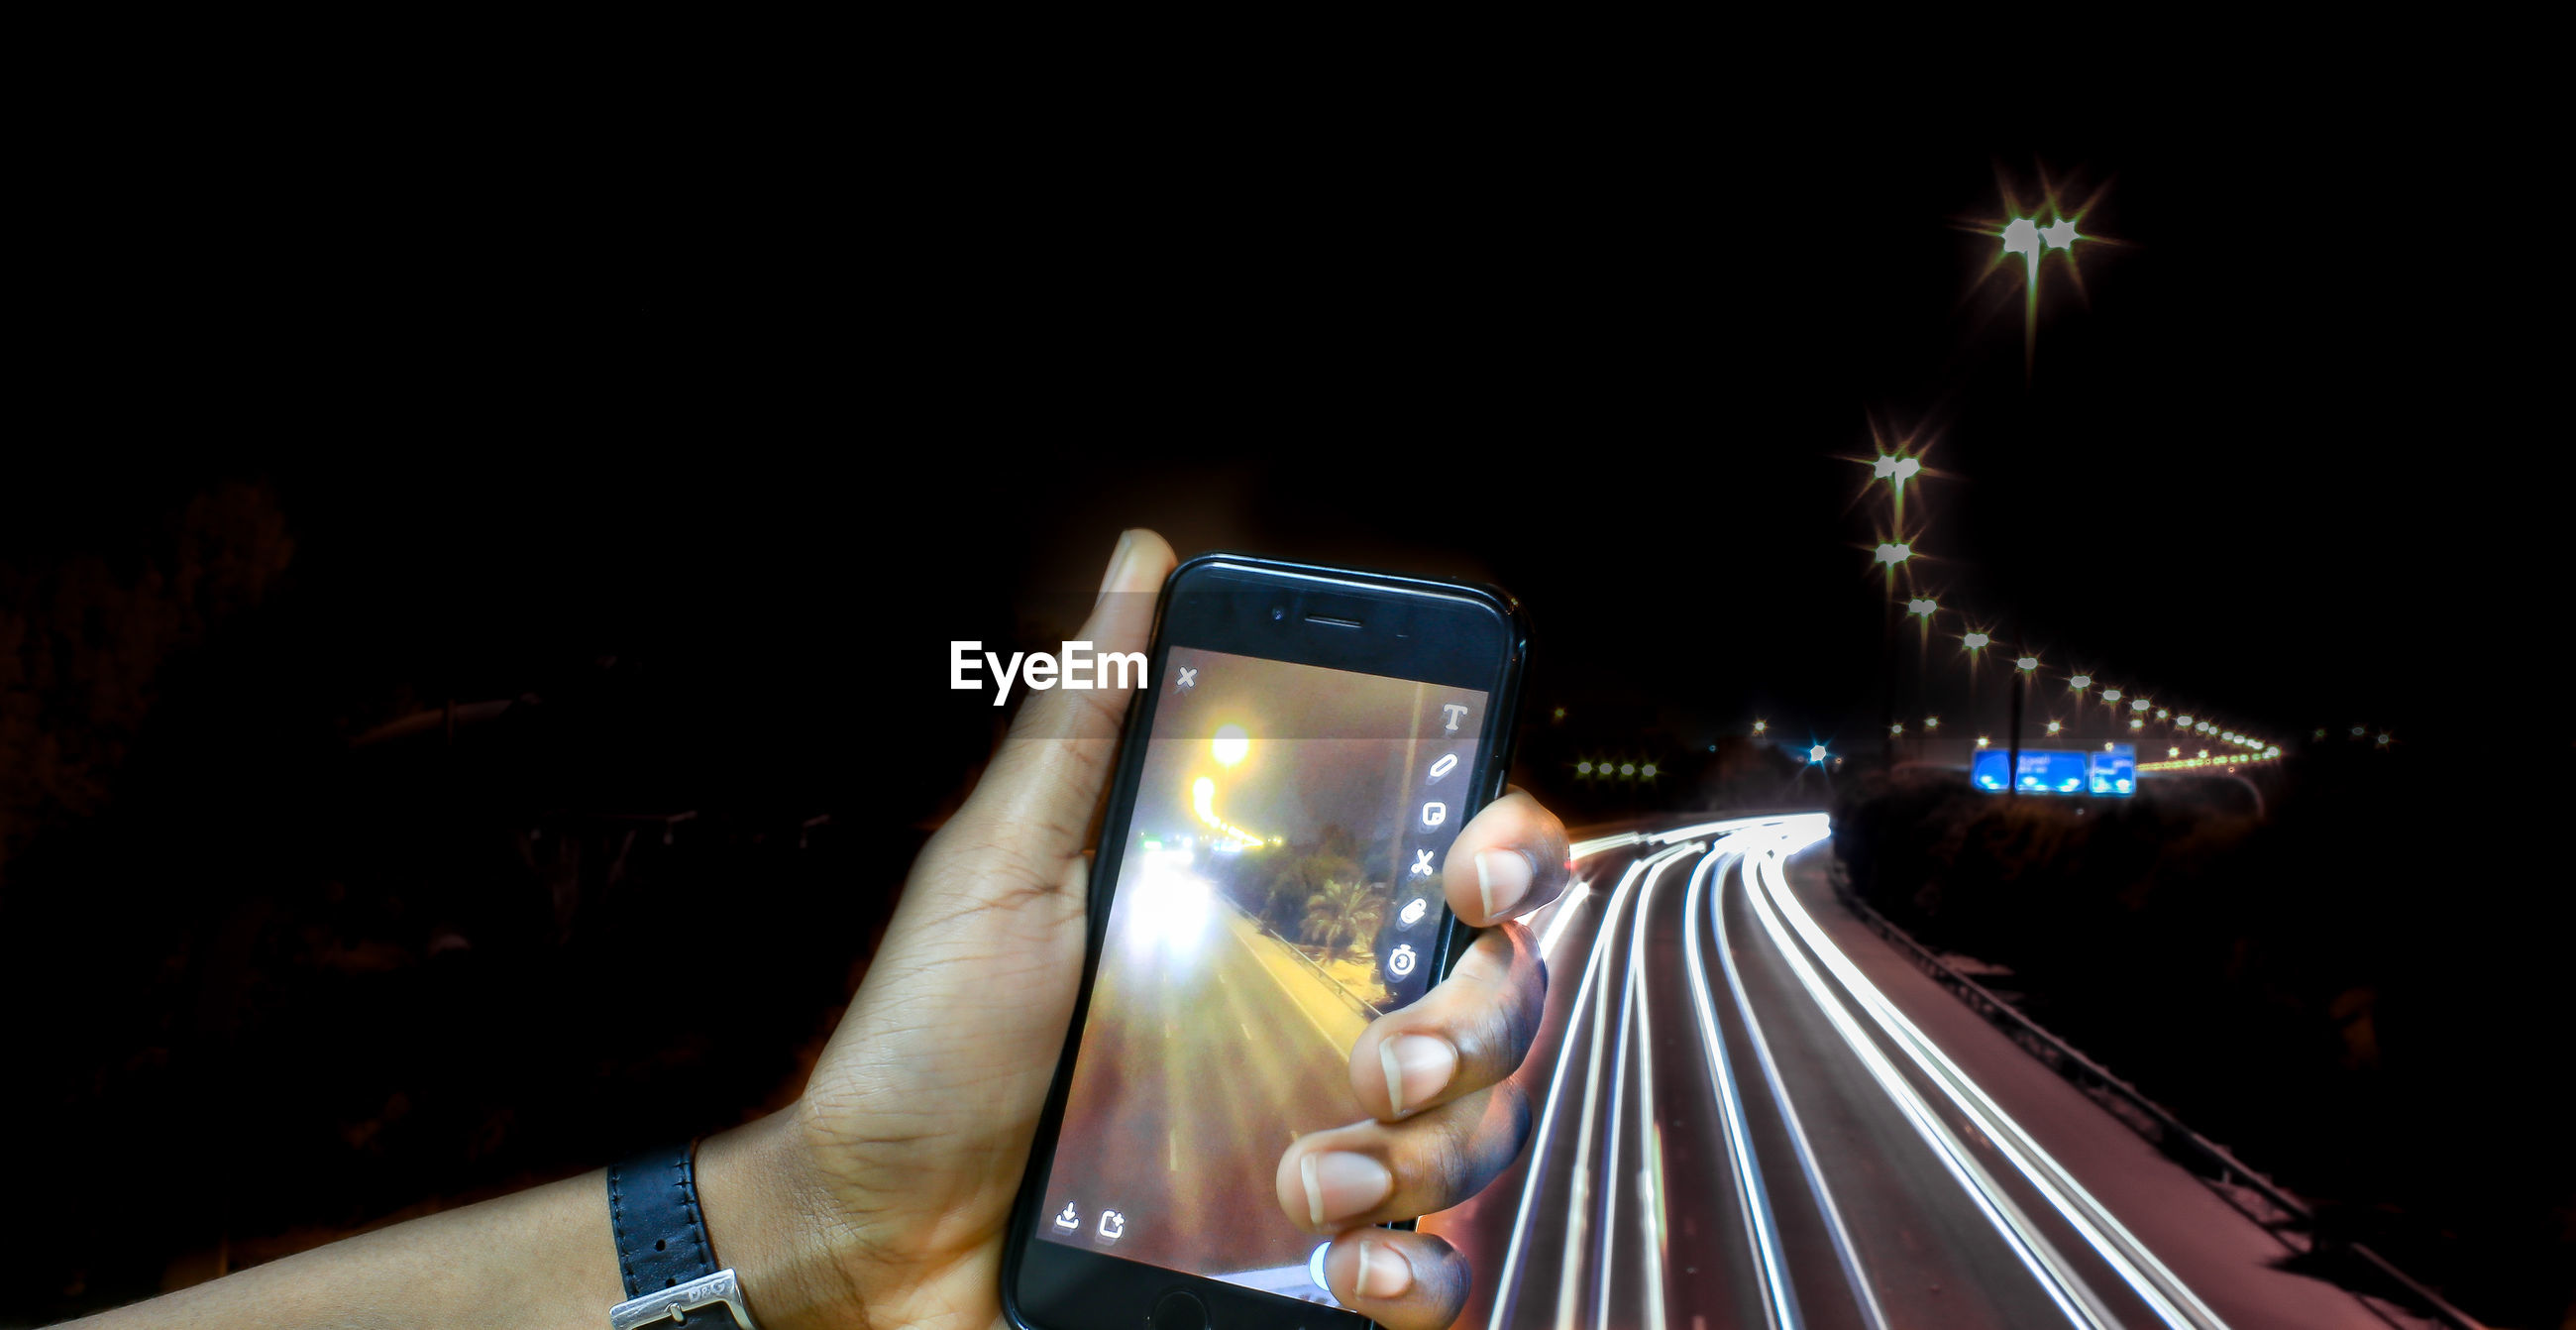 CLOSE-UP OF PERSON PHOTOGRAPHING ILLUMINATED SMART PHONE AT NIGHT